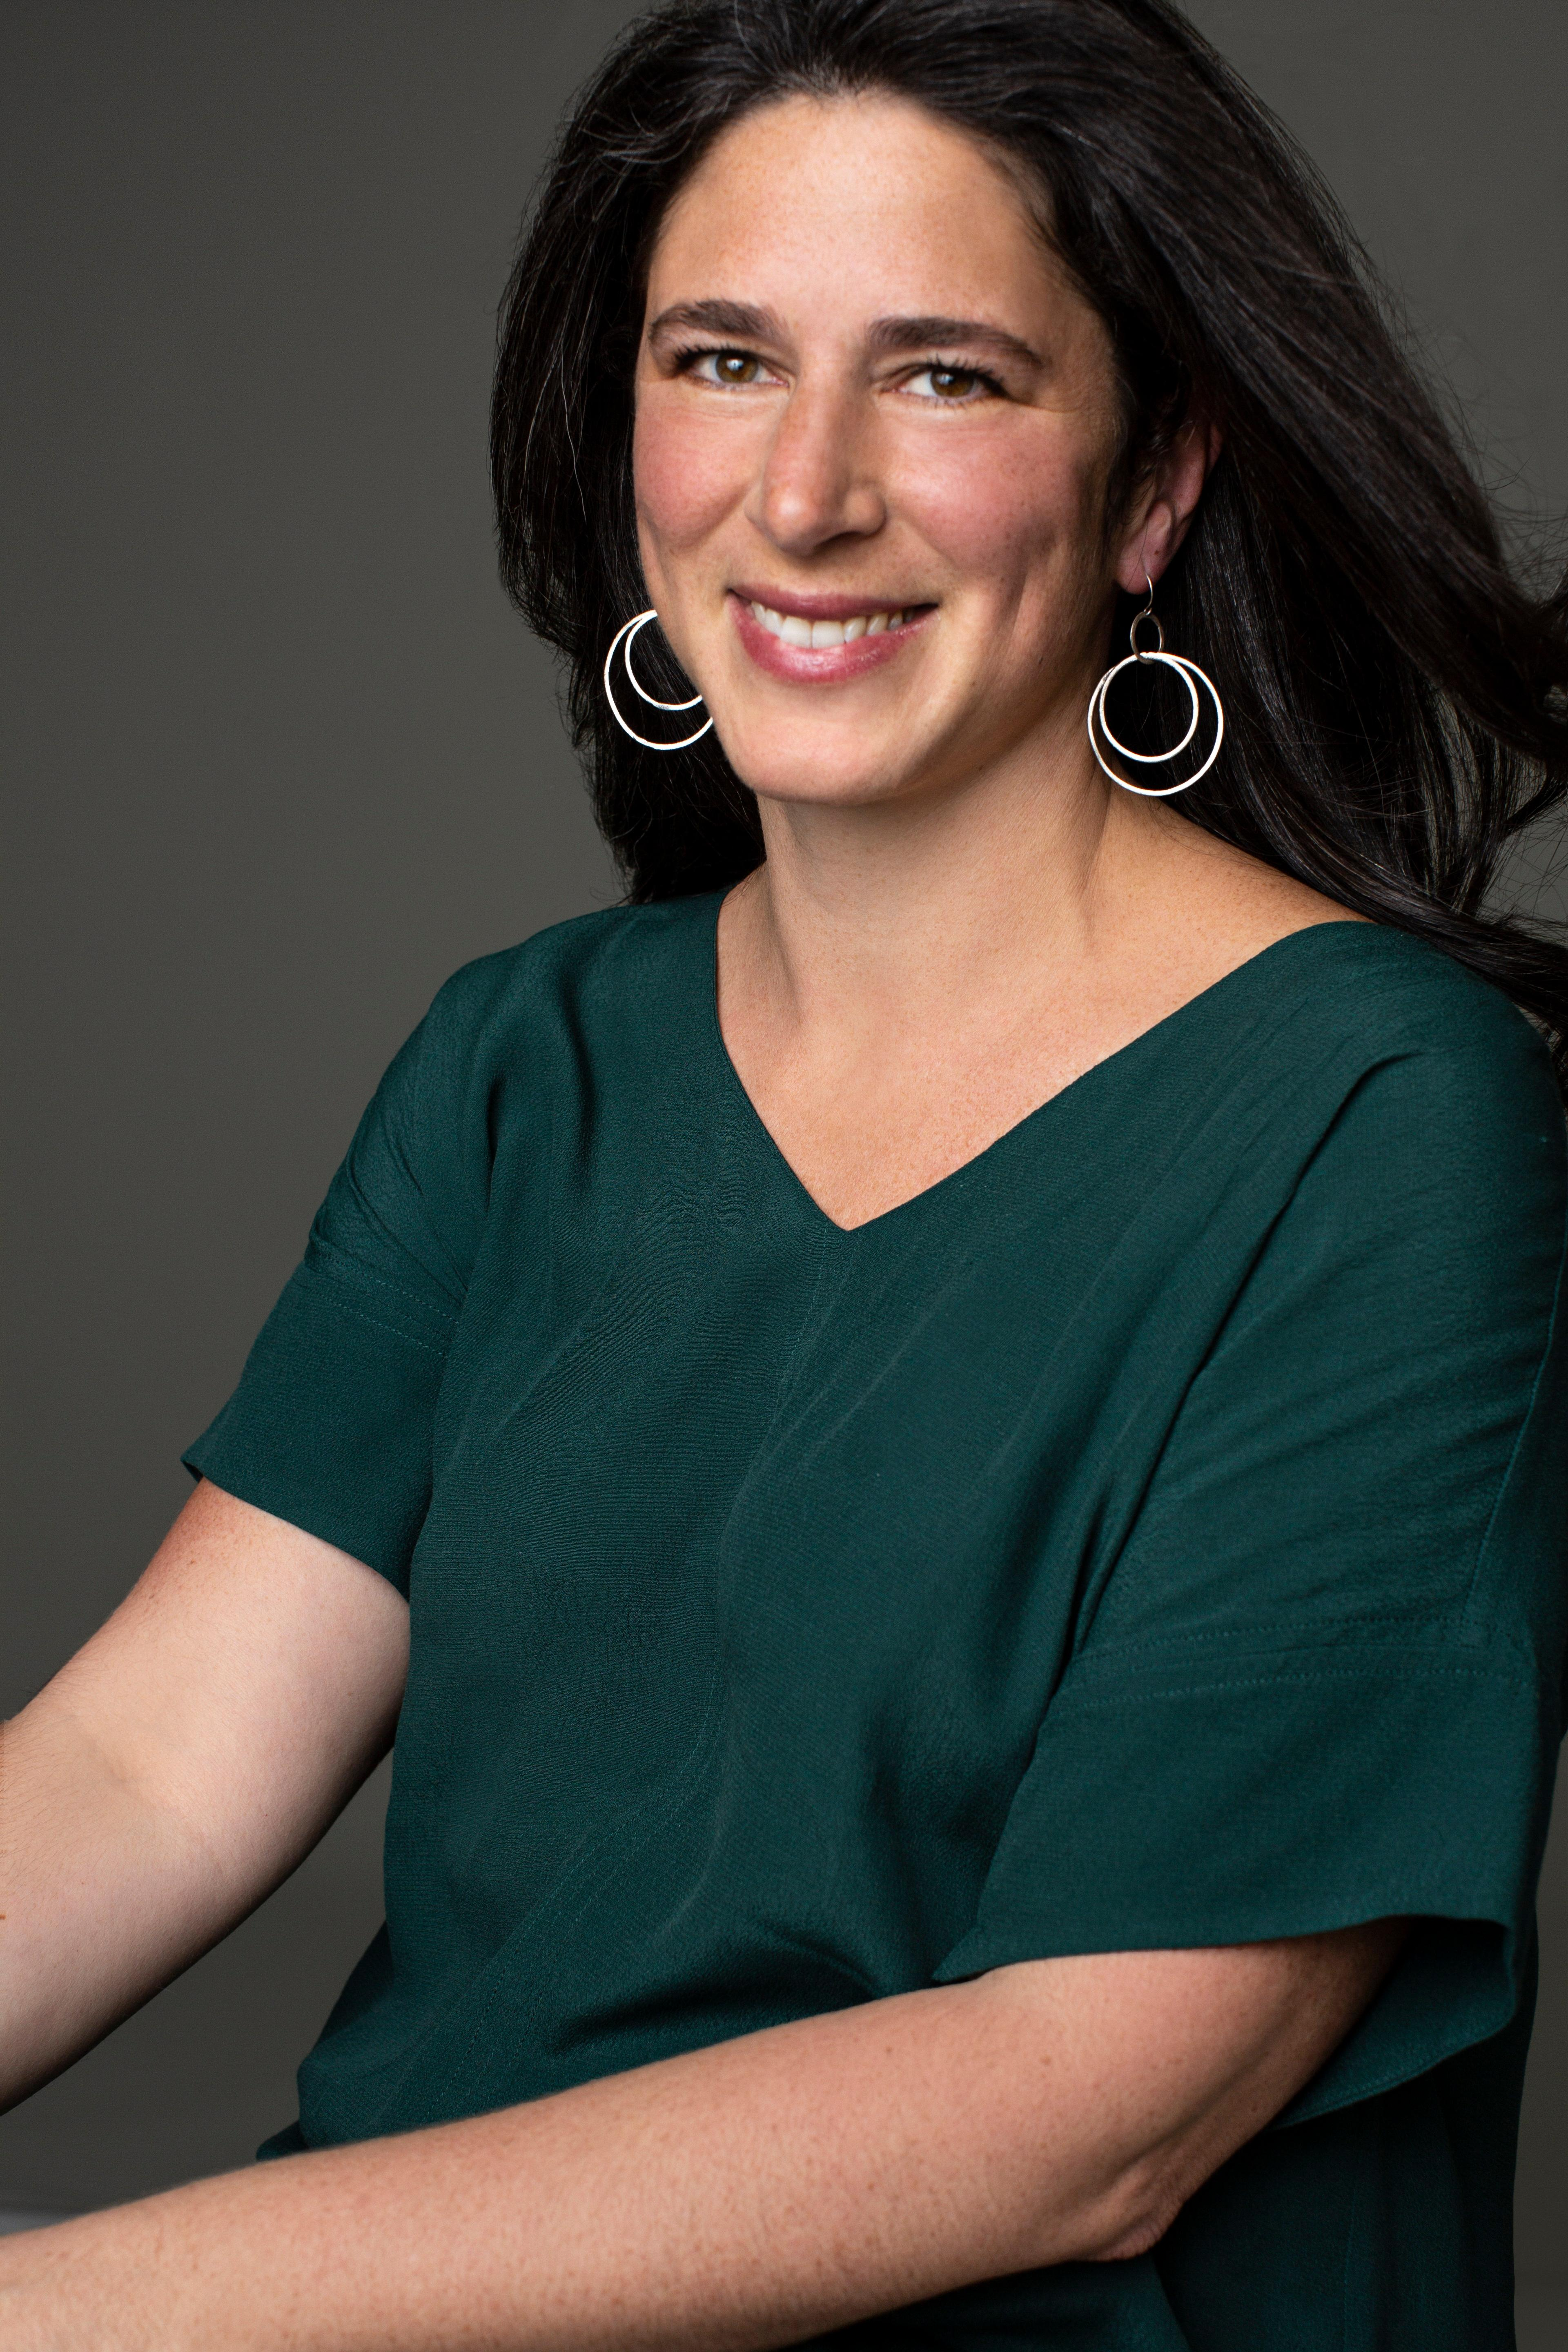 Author Rebecca Traister (Image: Victoria Steven)